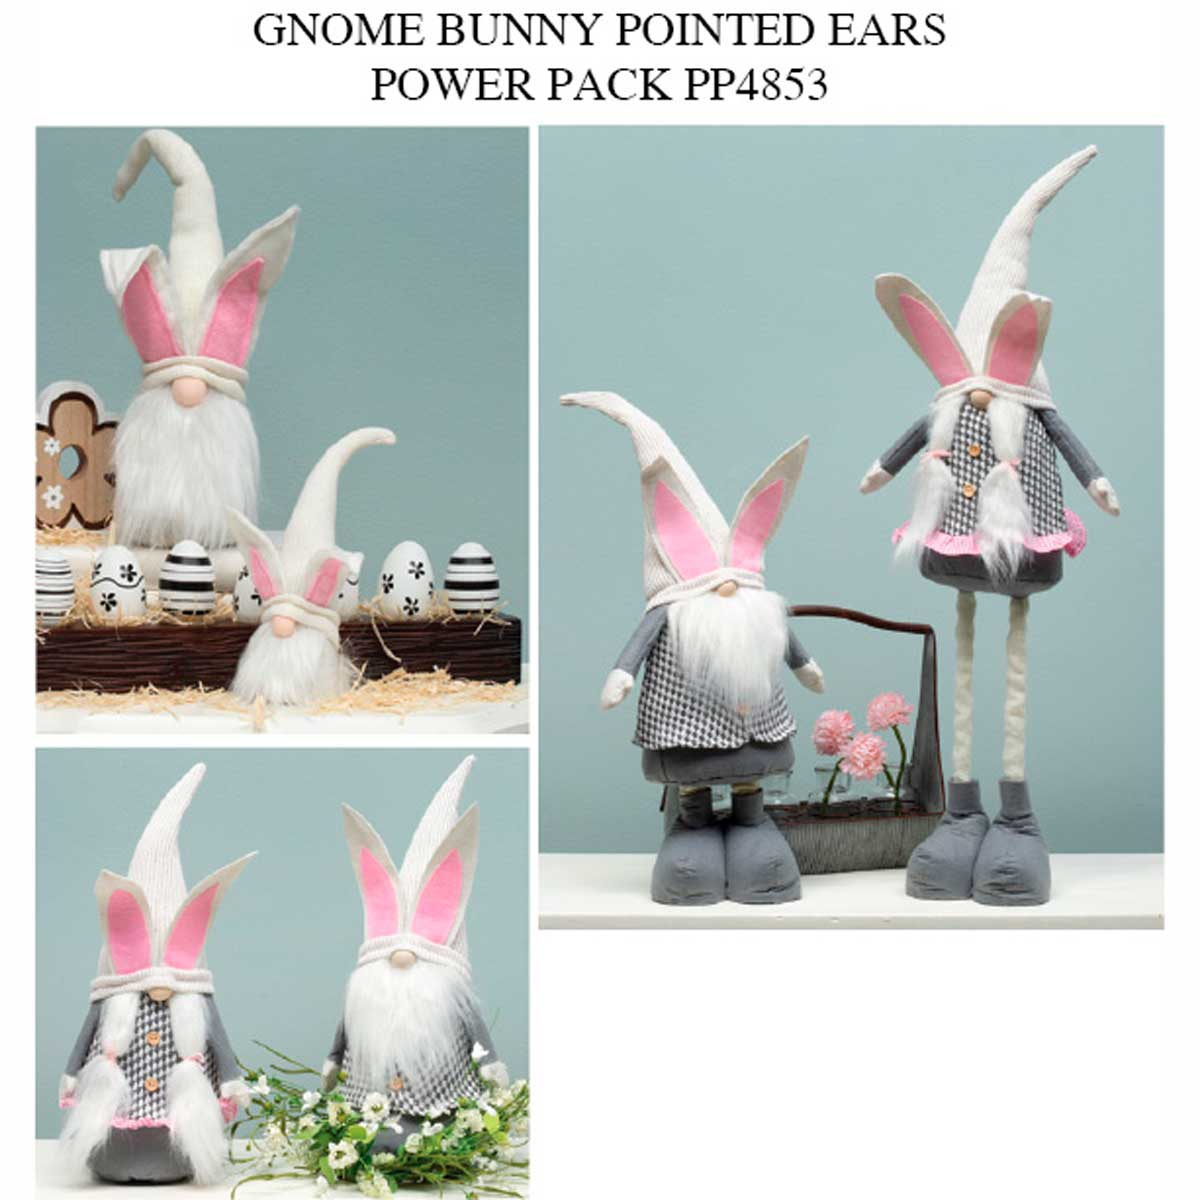 Hoppy Bunny Gnome Power Pack 14 Units PP4853